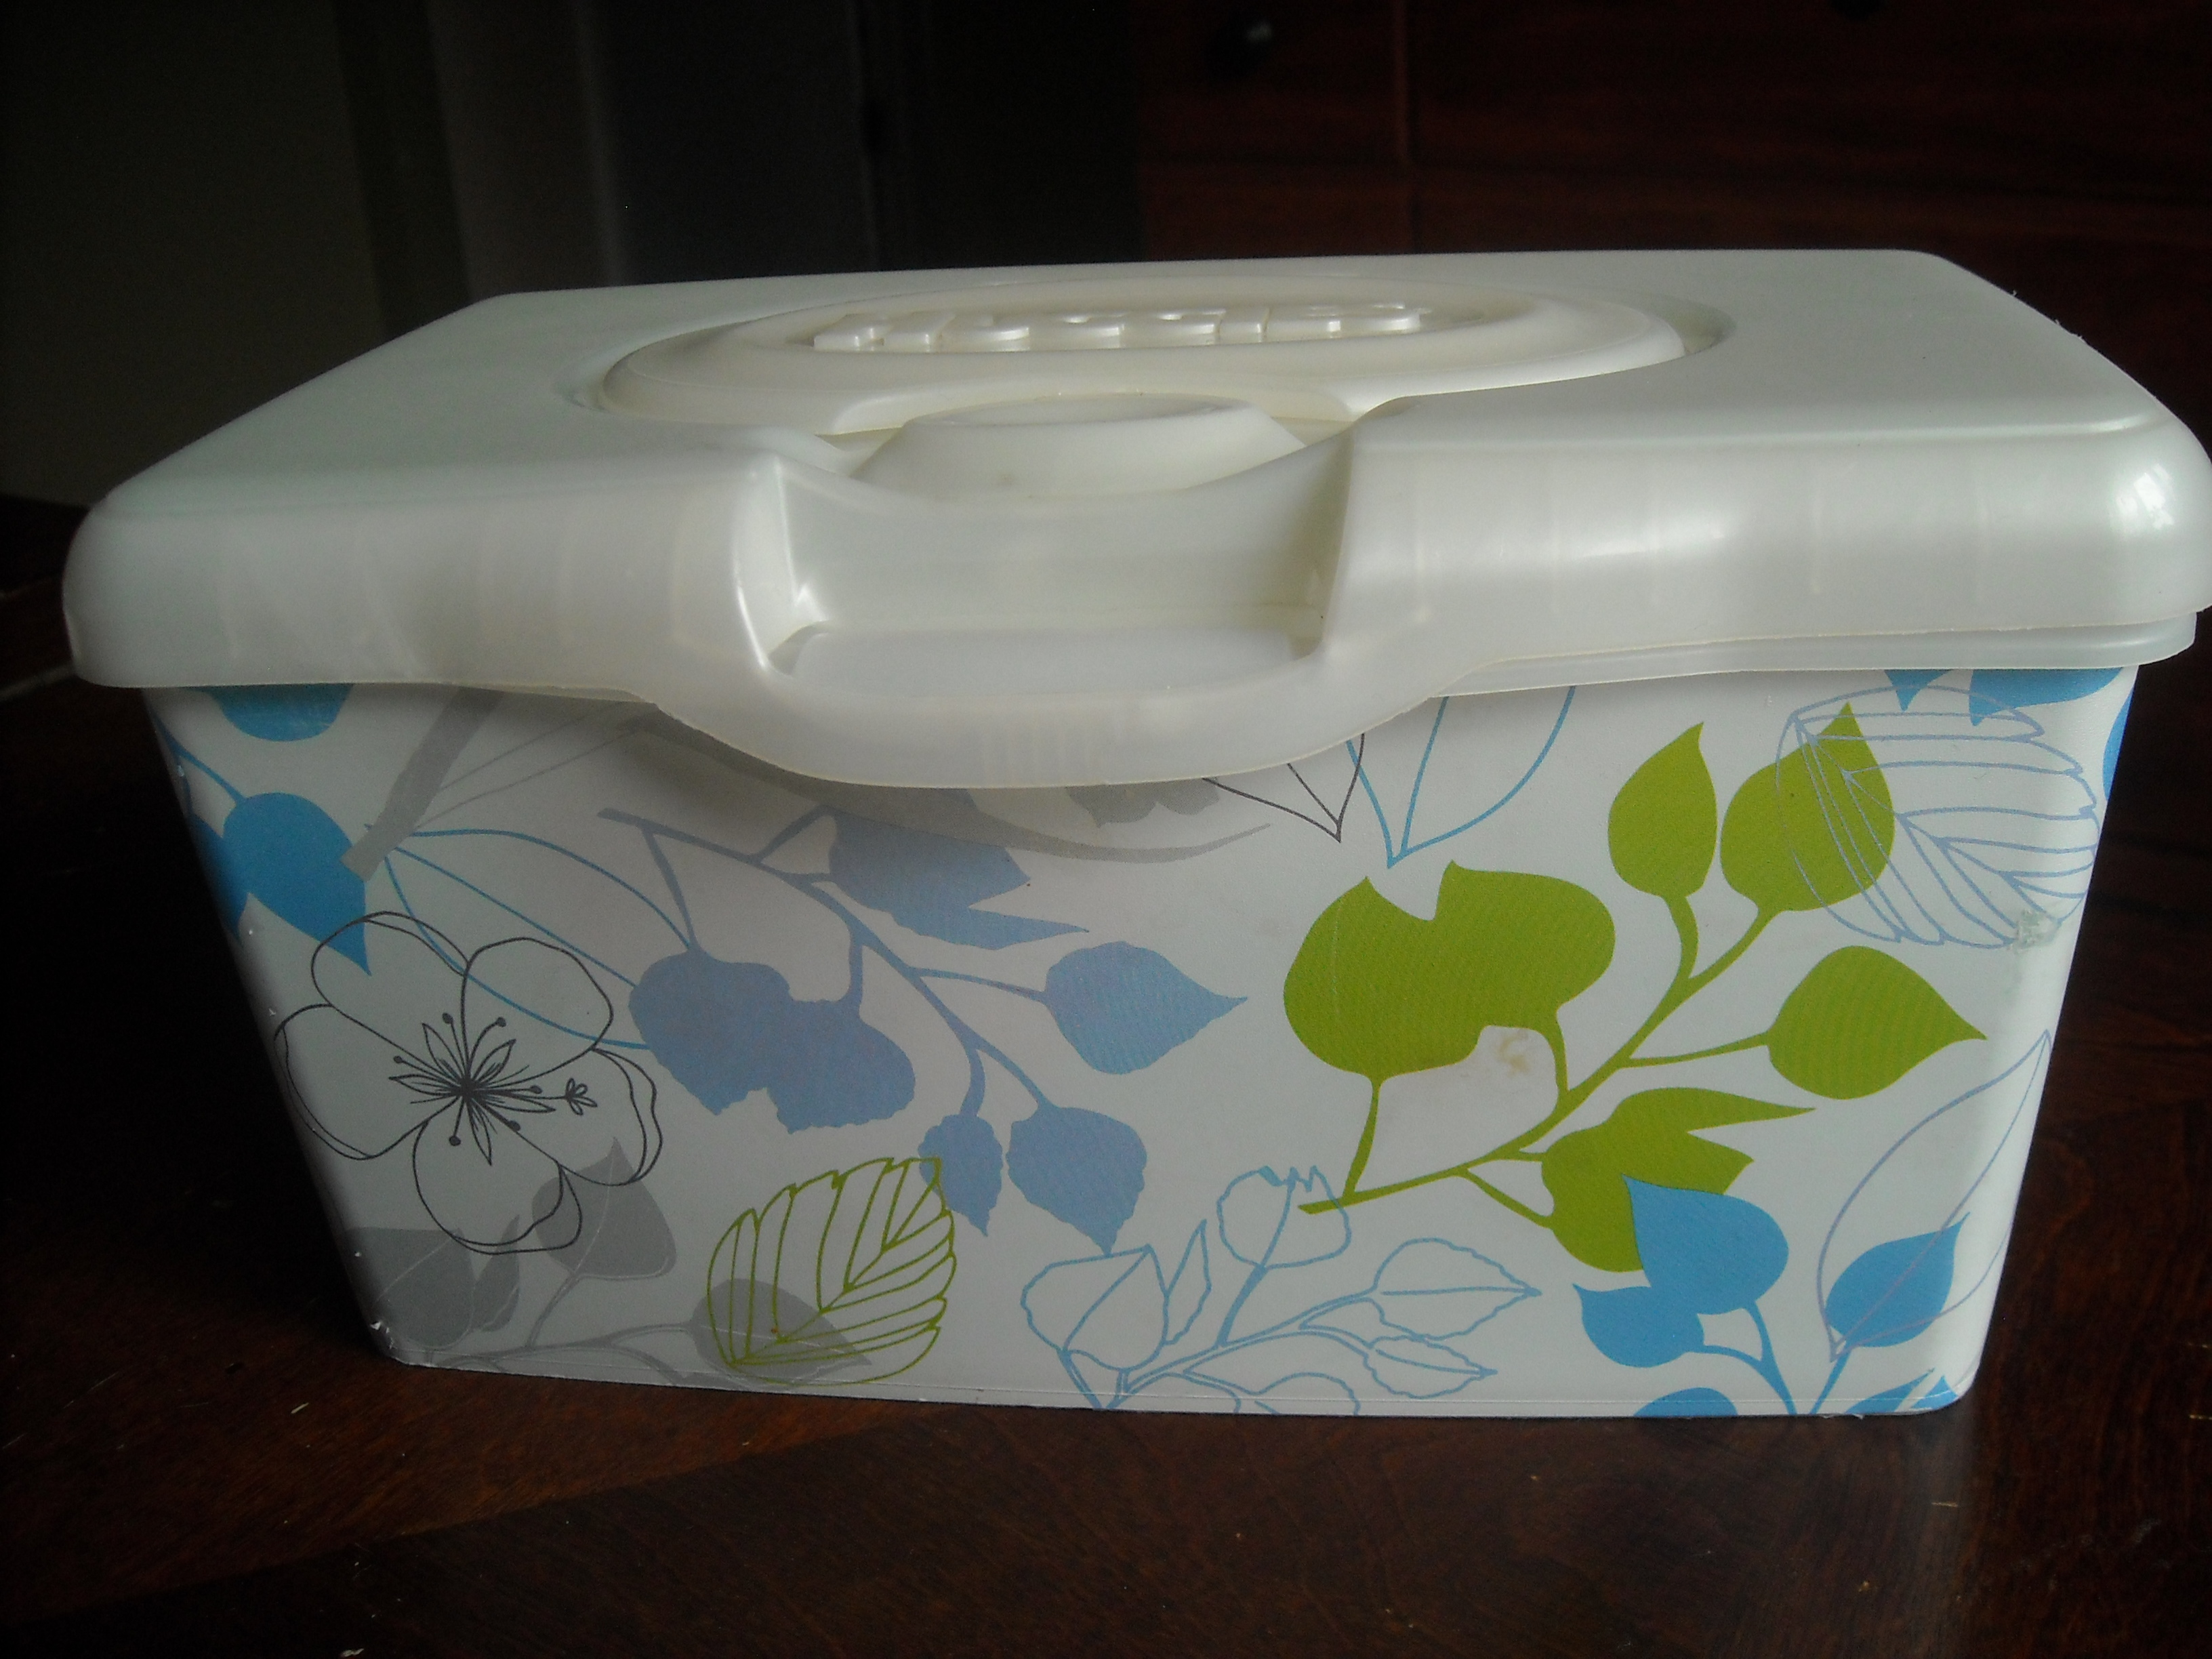 35 Smart Ways To Reuse Baby Wipes Containers